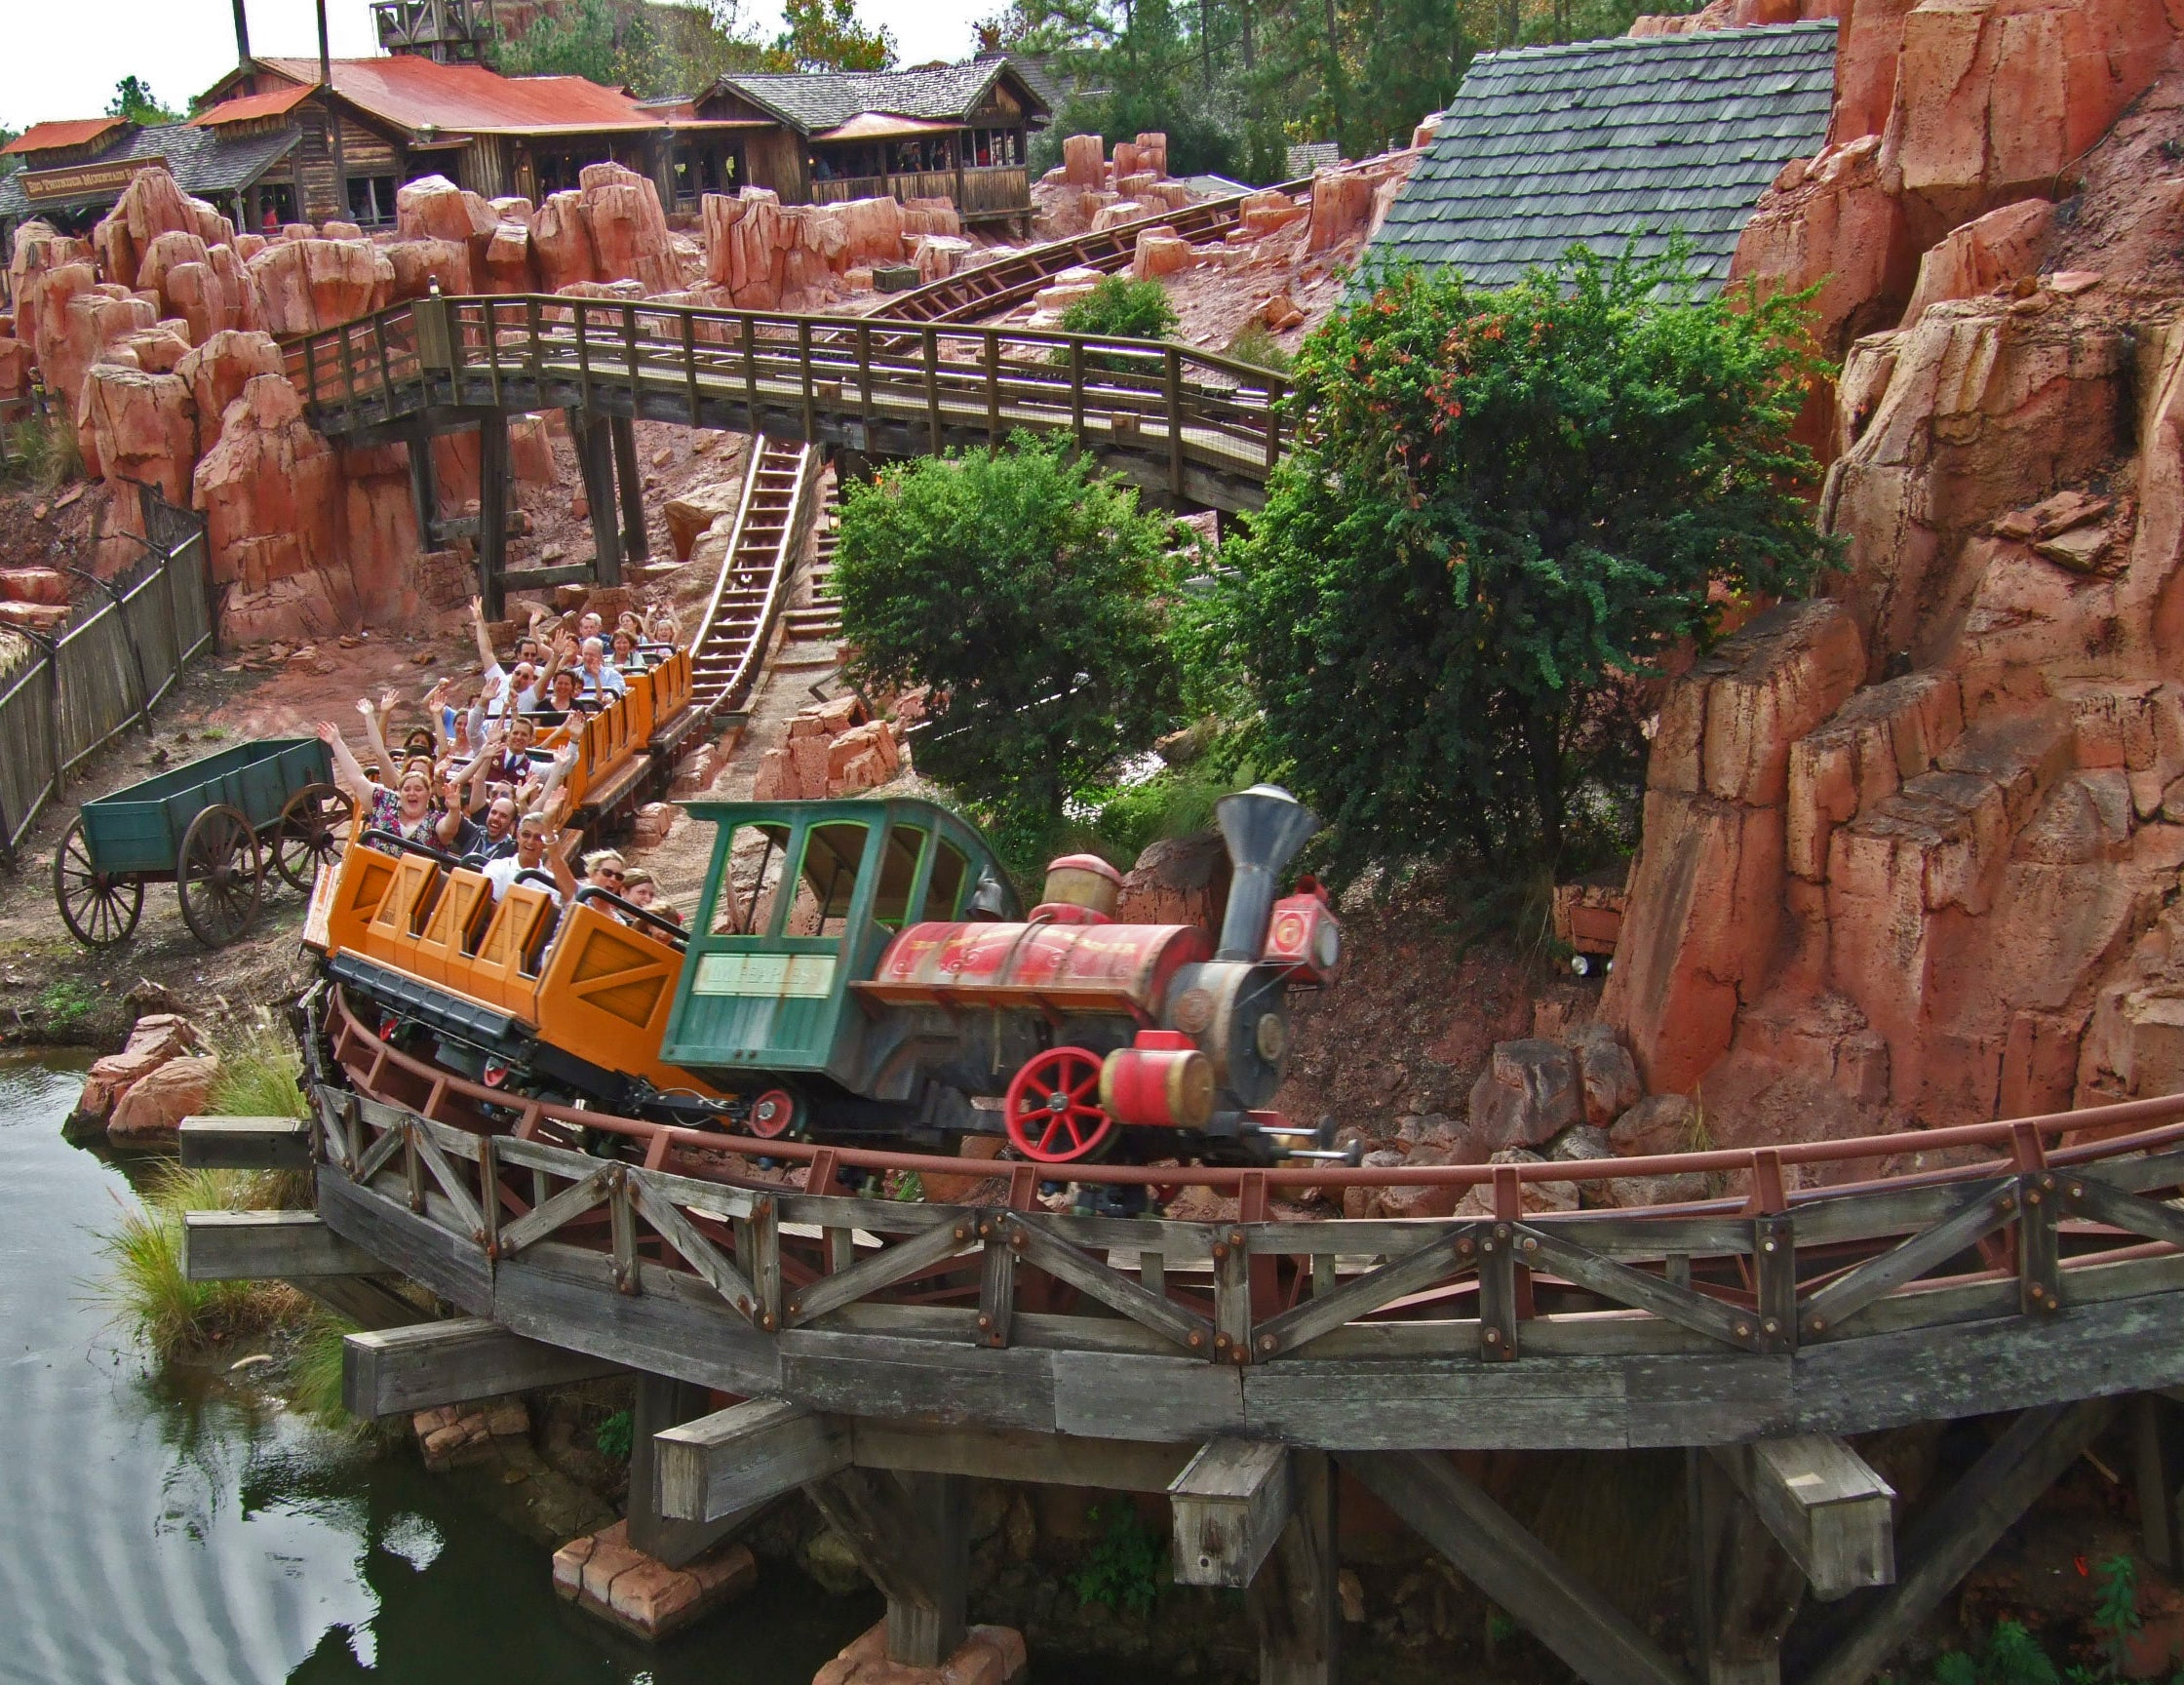 Riding A Roller Coaster Could Help You Pass Small Kidney Stones